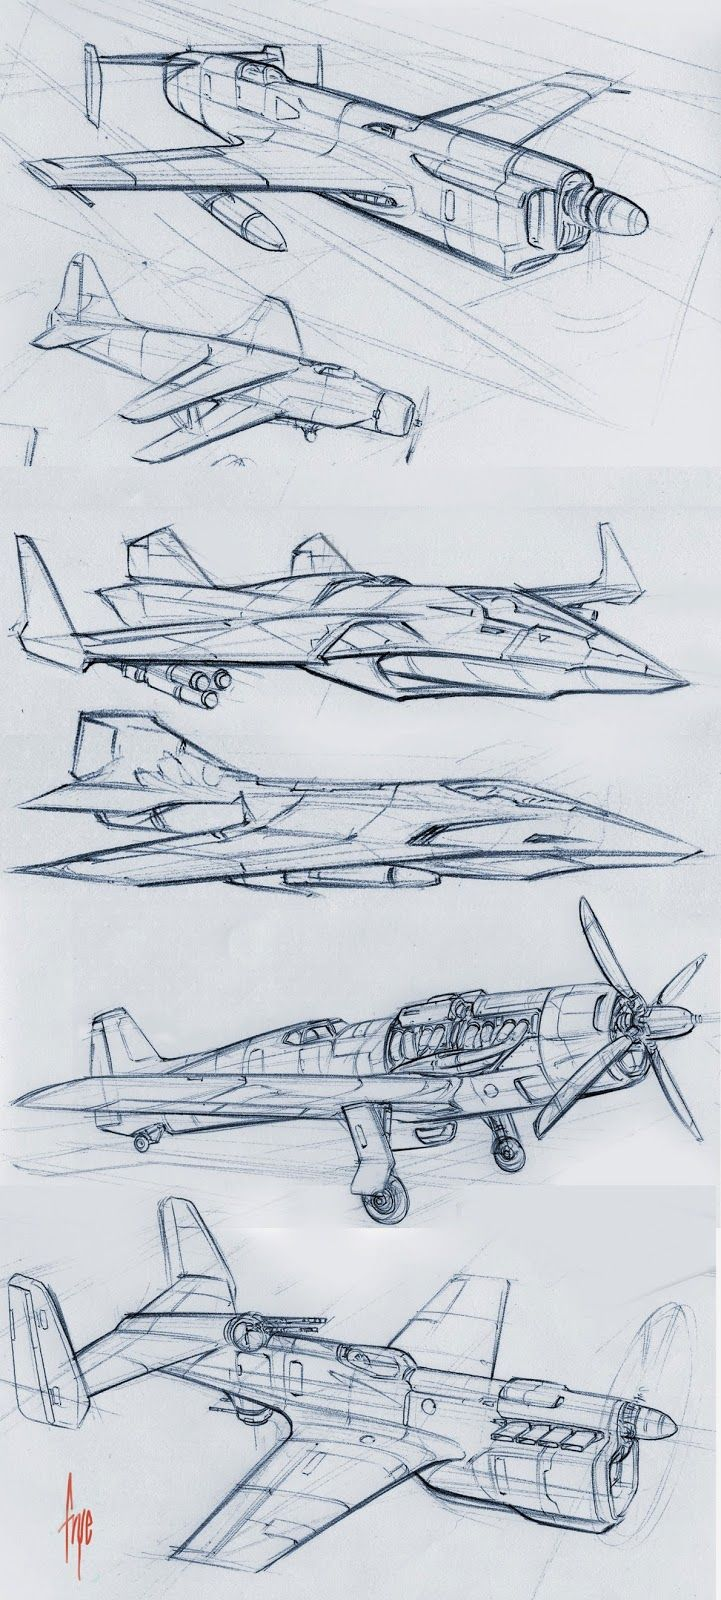 Velocity in 2d planes and jets sketches